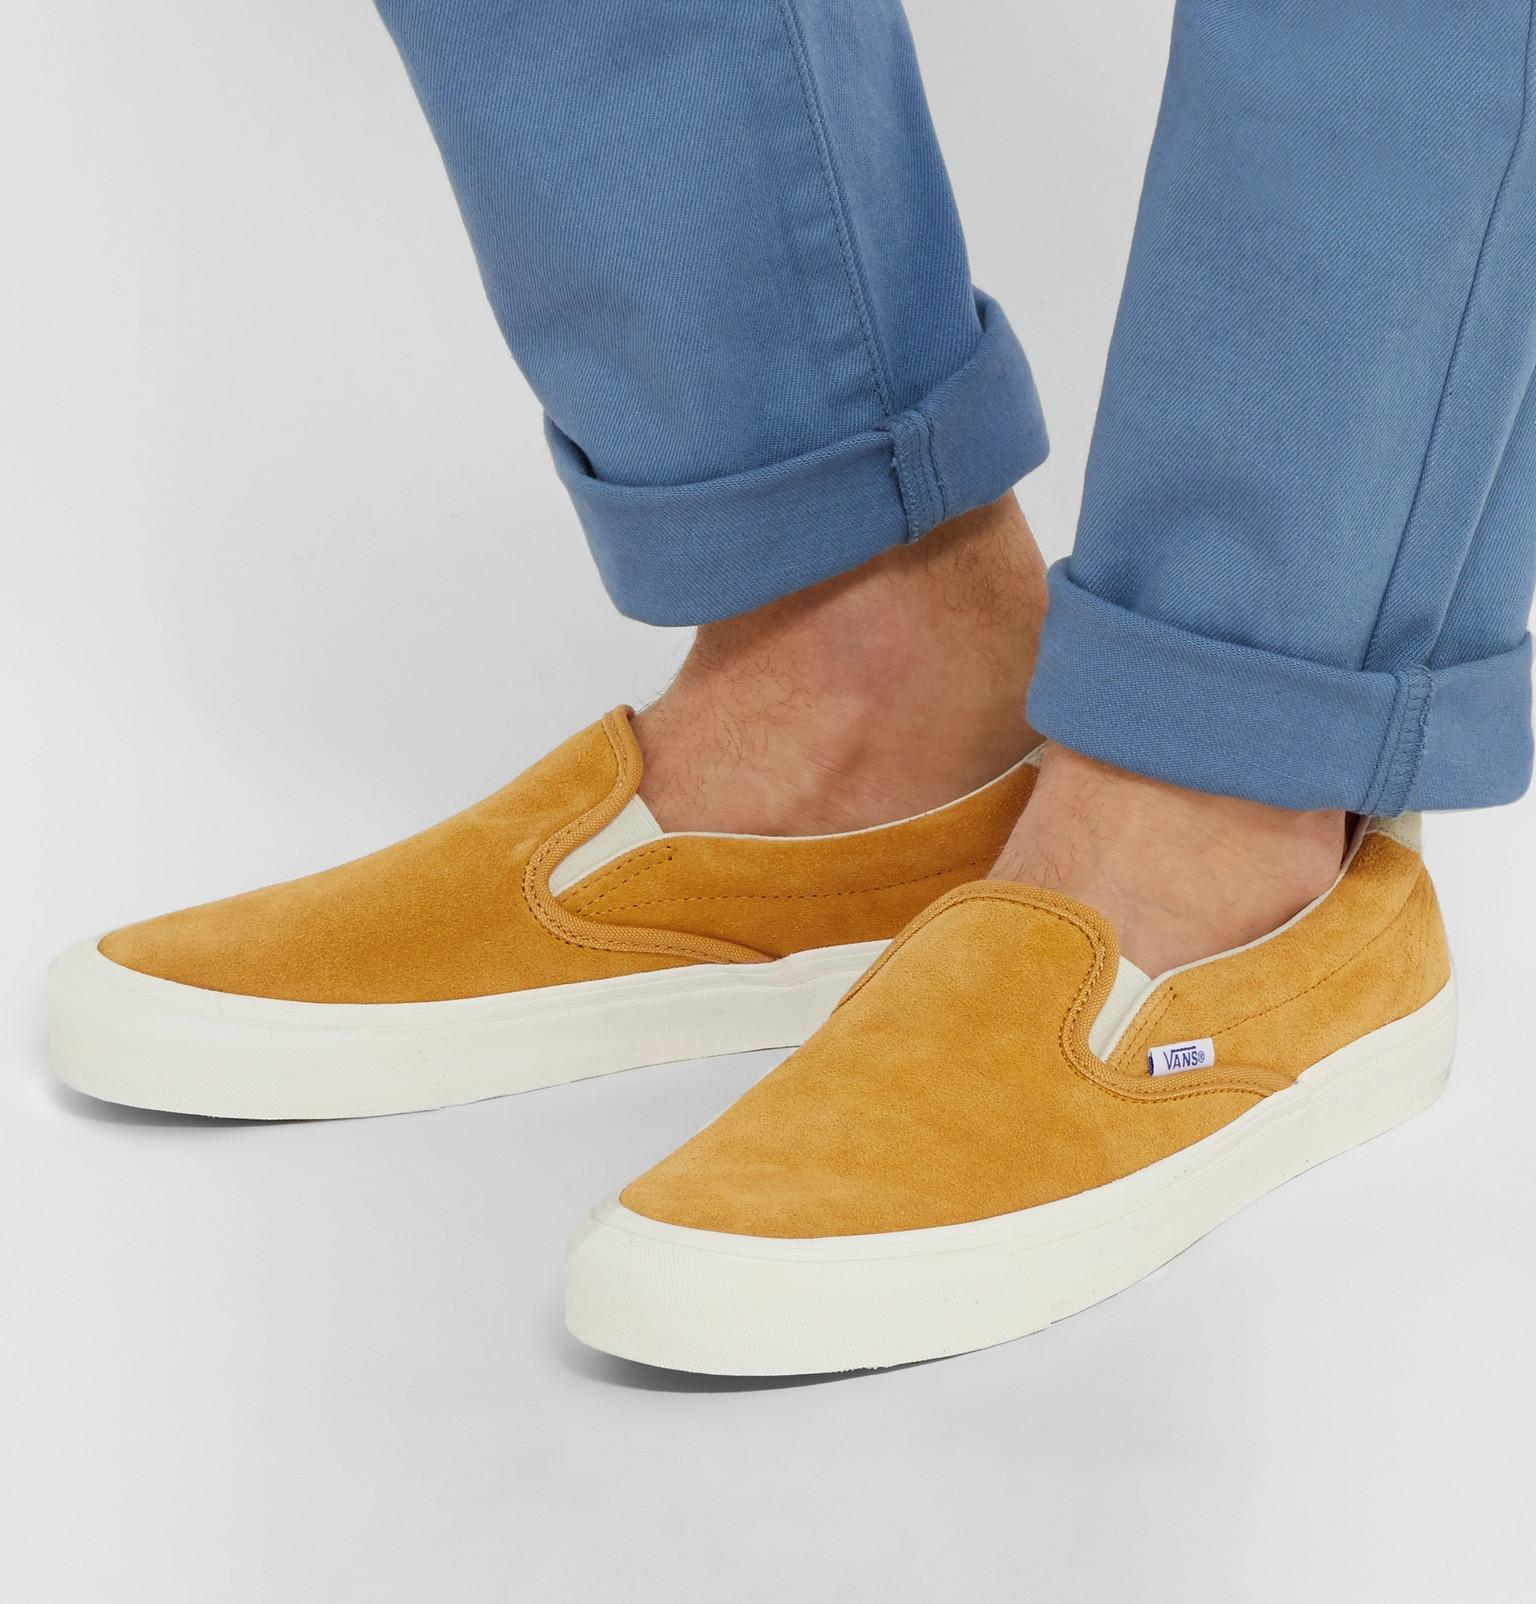 c851f54e62 Lyst - Vans Og 59 Lx Suede Slip-on Sneakers in Yellow for Men